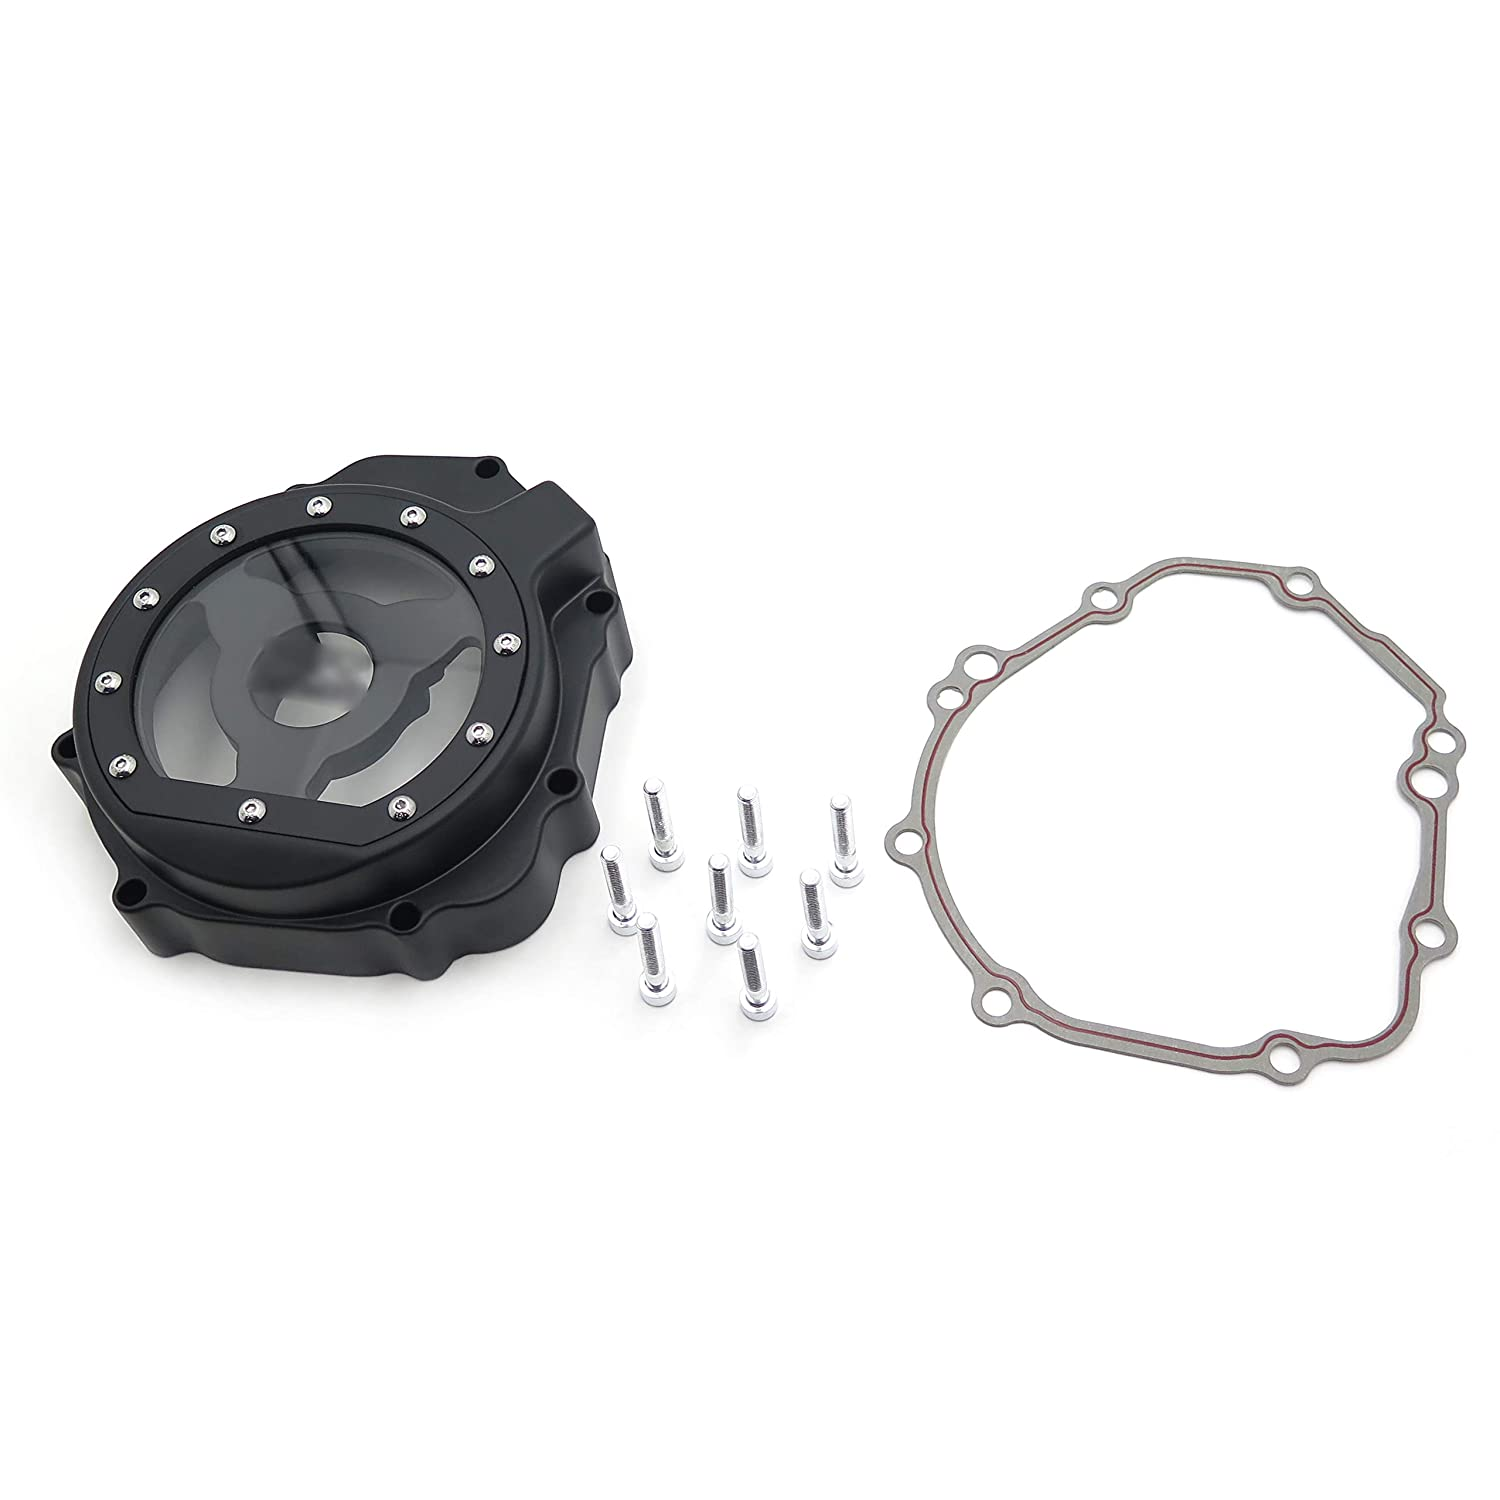 Motorcycle Engine Stator cover see through FOR Suzuki 2005-2008 GSXR1000 Black left SMT MOTO